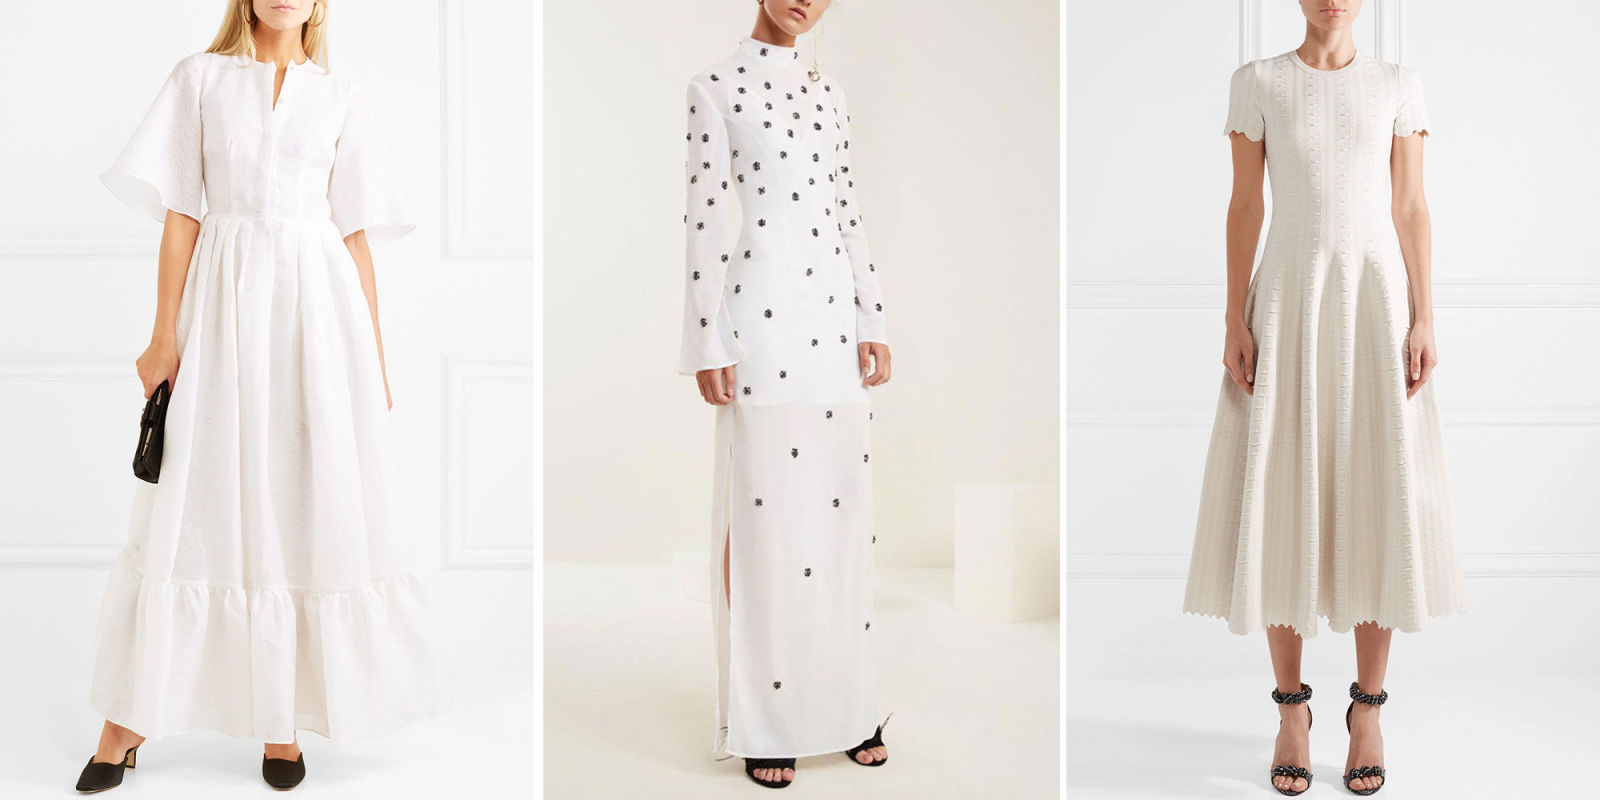 Summer holiday dresses 2018 uk the voice